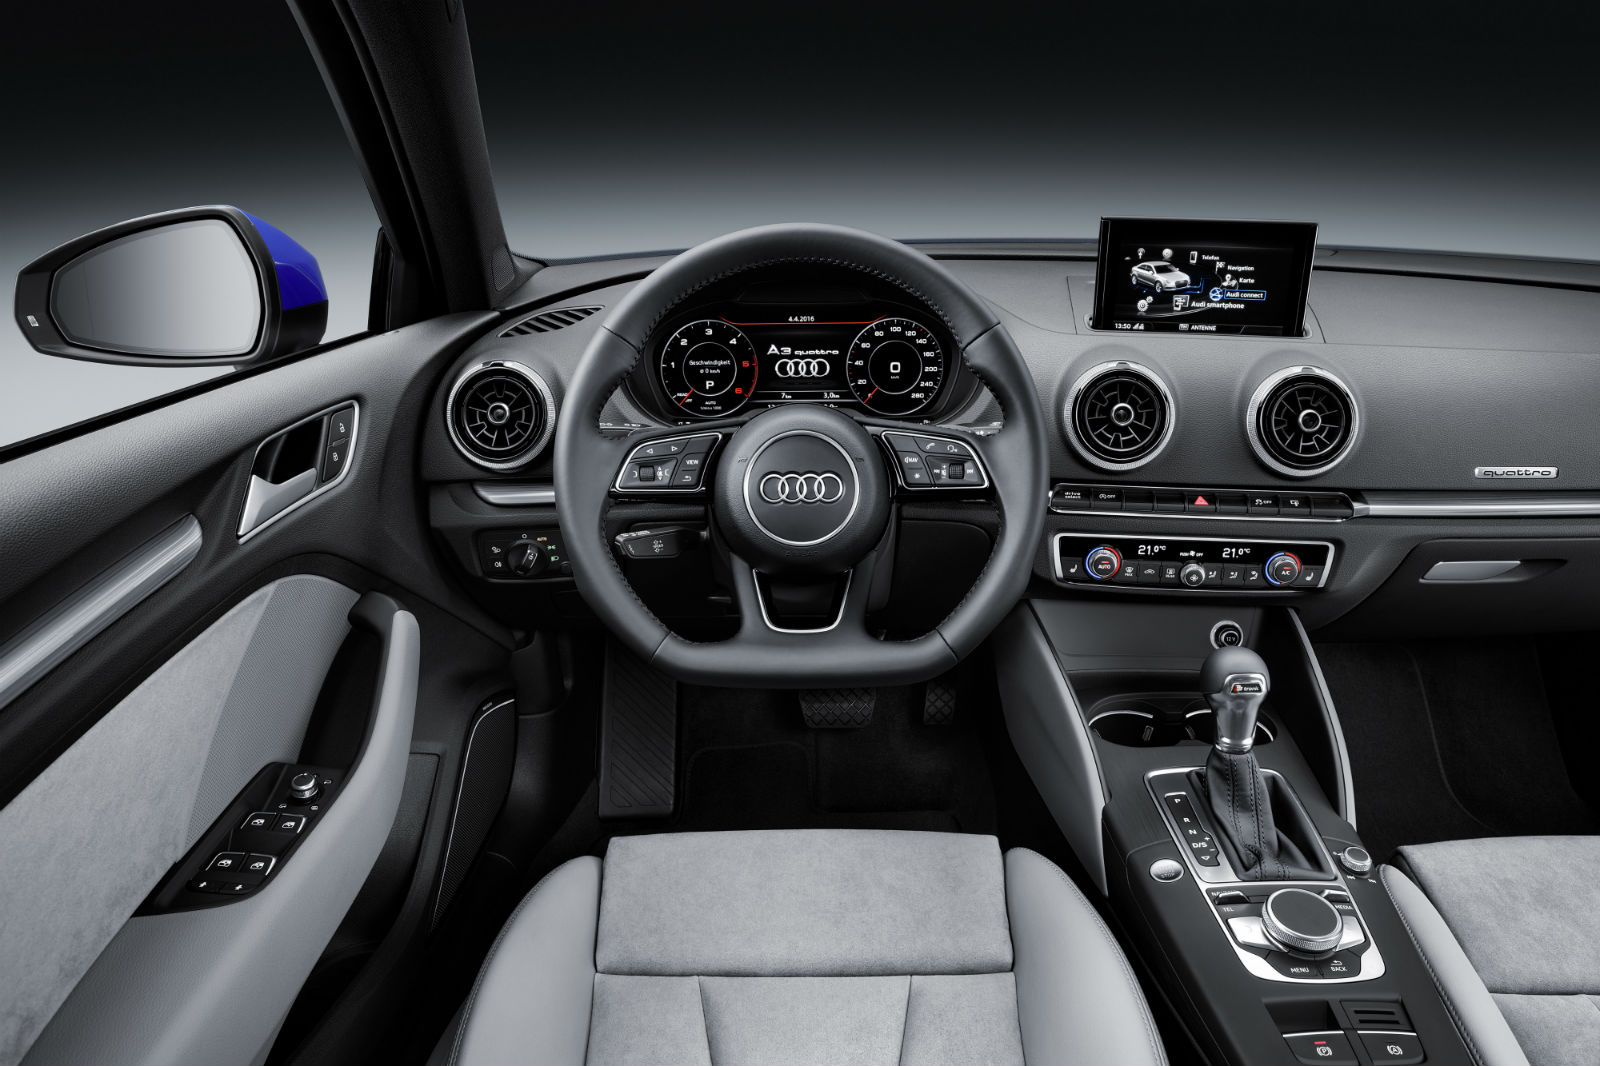 Audis Latest Models Add Amazon Music To The Dashboard - Audis